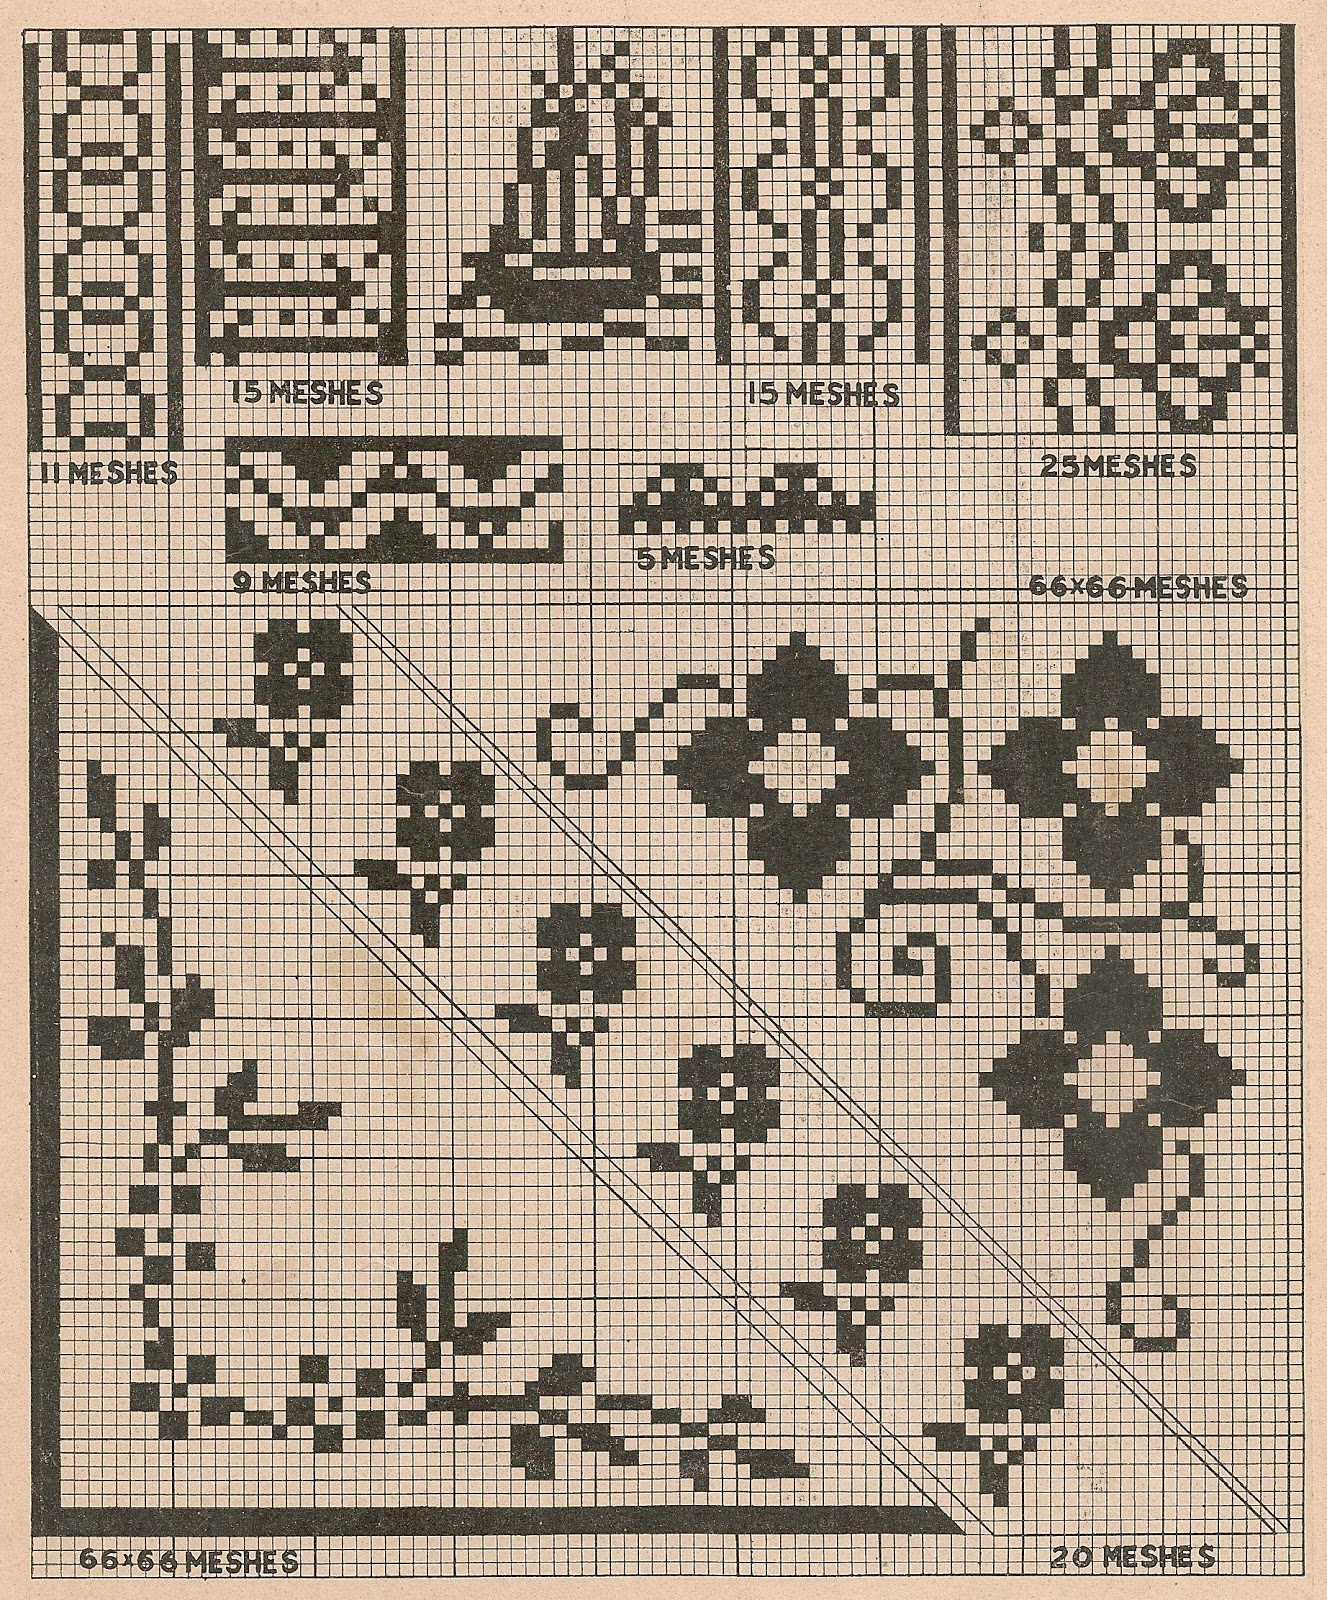 Sentimental baby free simple vintage cross stitch patterns dainty little floral patterns would look lovely on a babys yoke dress either cross stitched or filet crochet dt1010fo